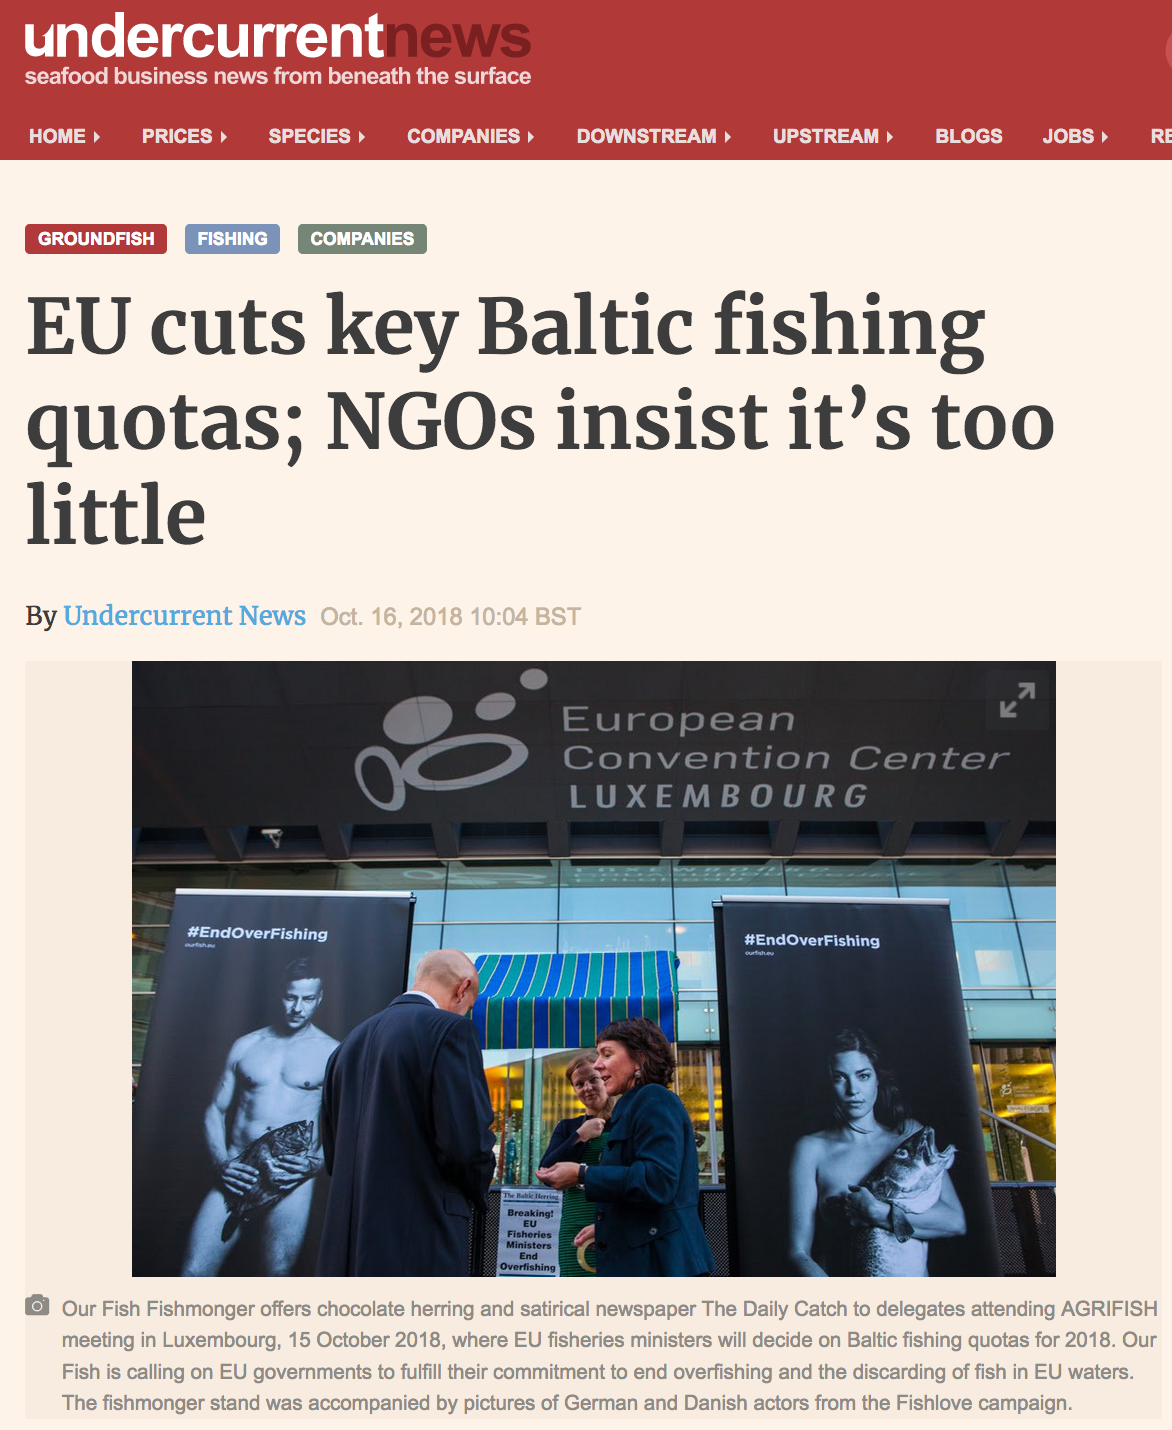 EU cuts key Baltic fishing quotas; NGOs insist it's too little